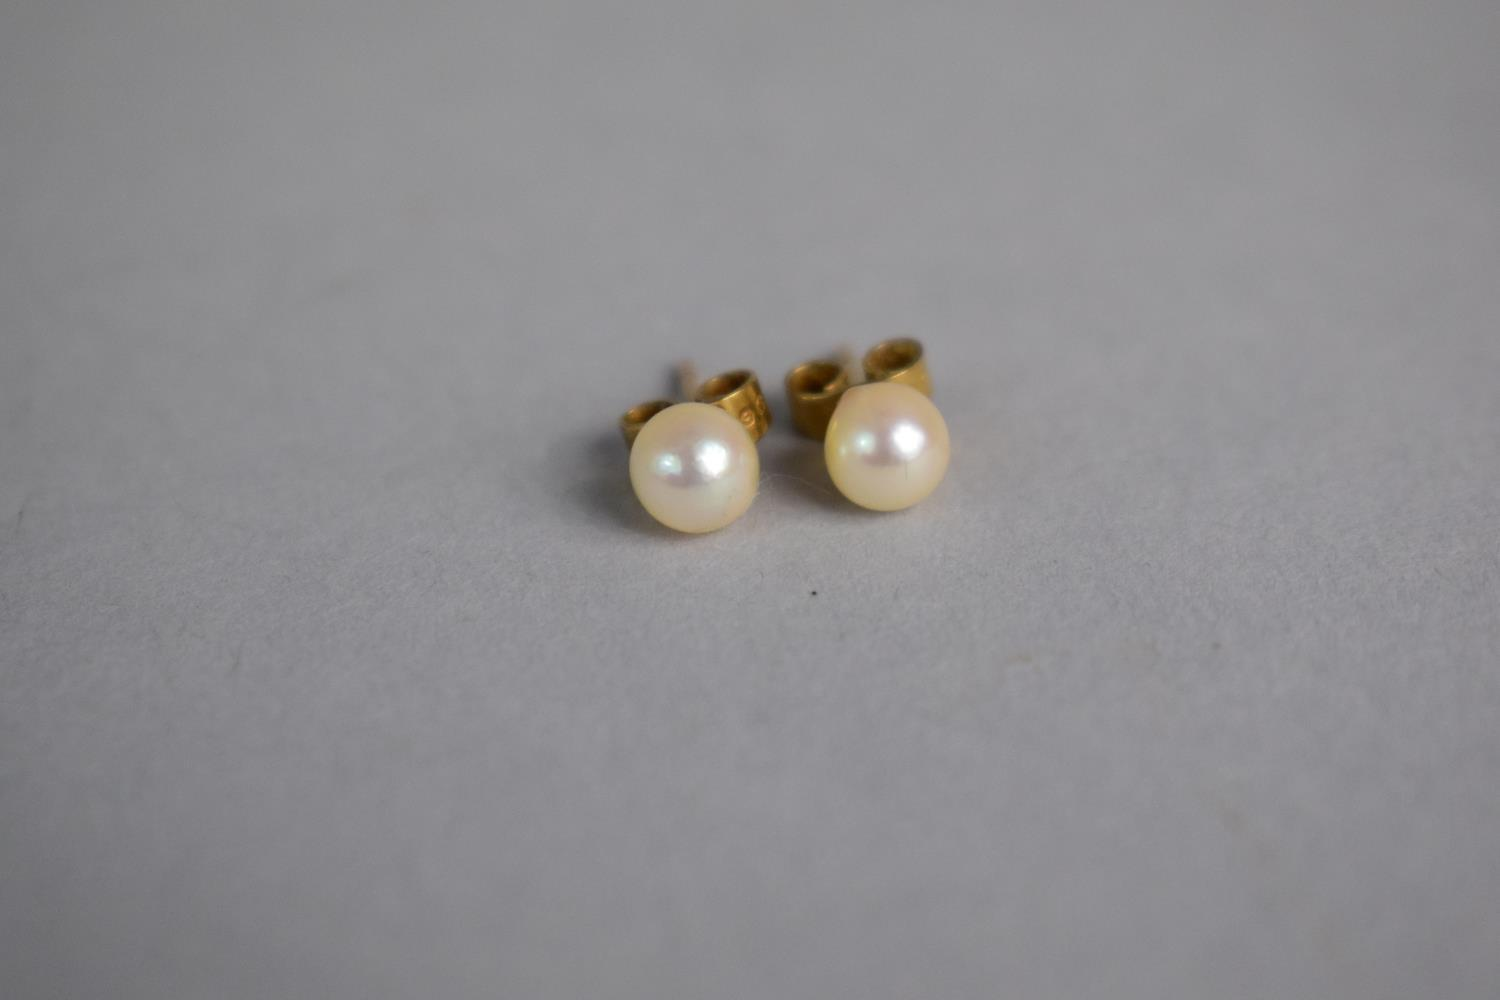 Lot 316 - A Pair of Pearl Earrings Mounted on 9ct Gold Shanks. Each Pearl around 6 Metric Grains.